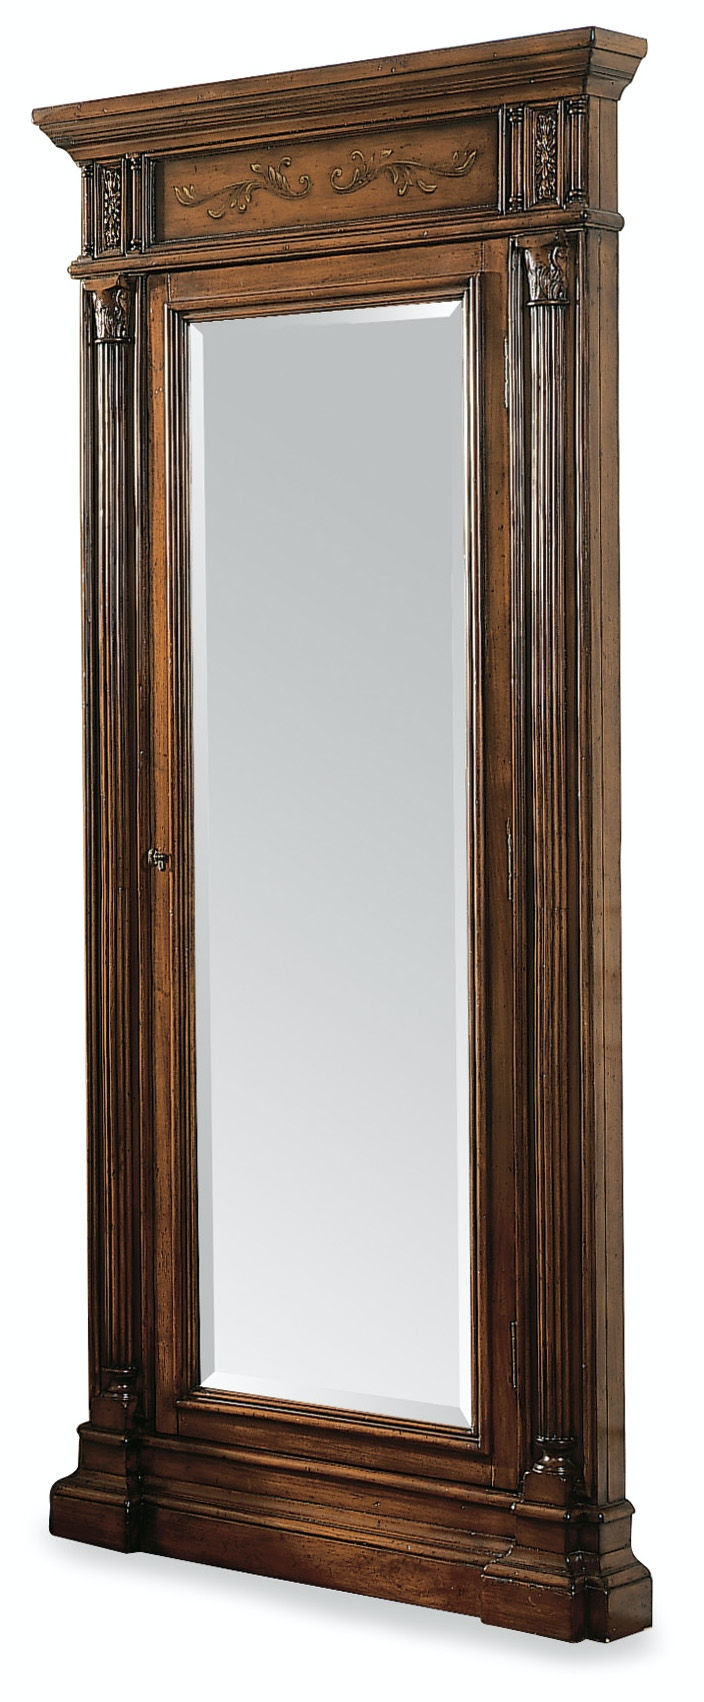 Hooker Furniture Accents Floor Mirror W/Jewelry Armoire